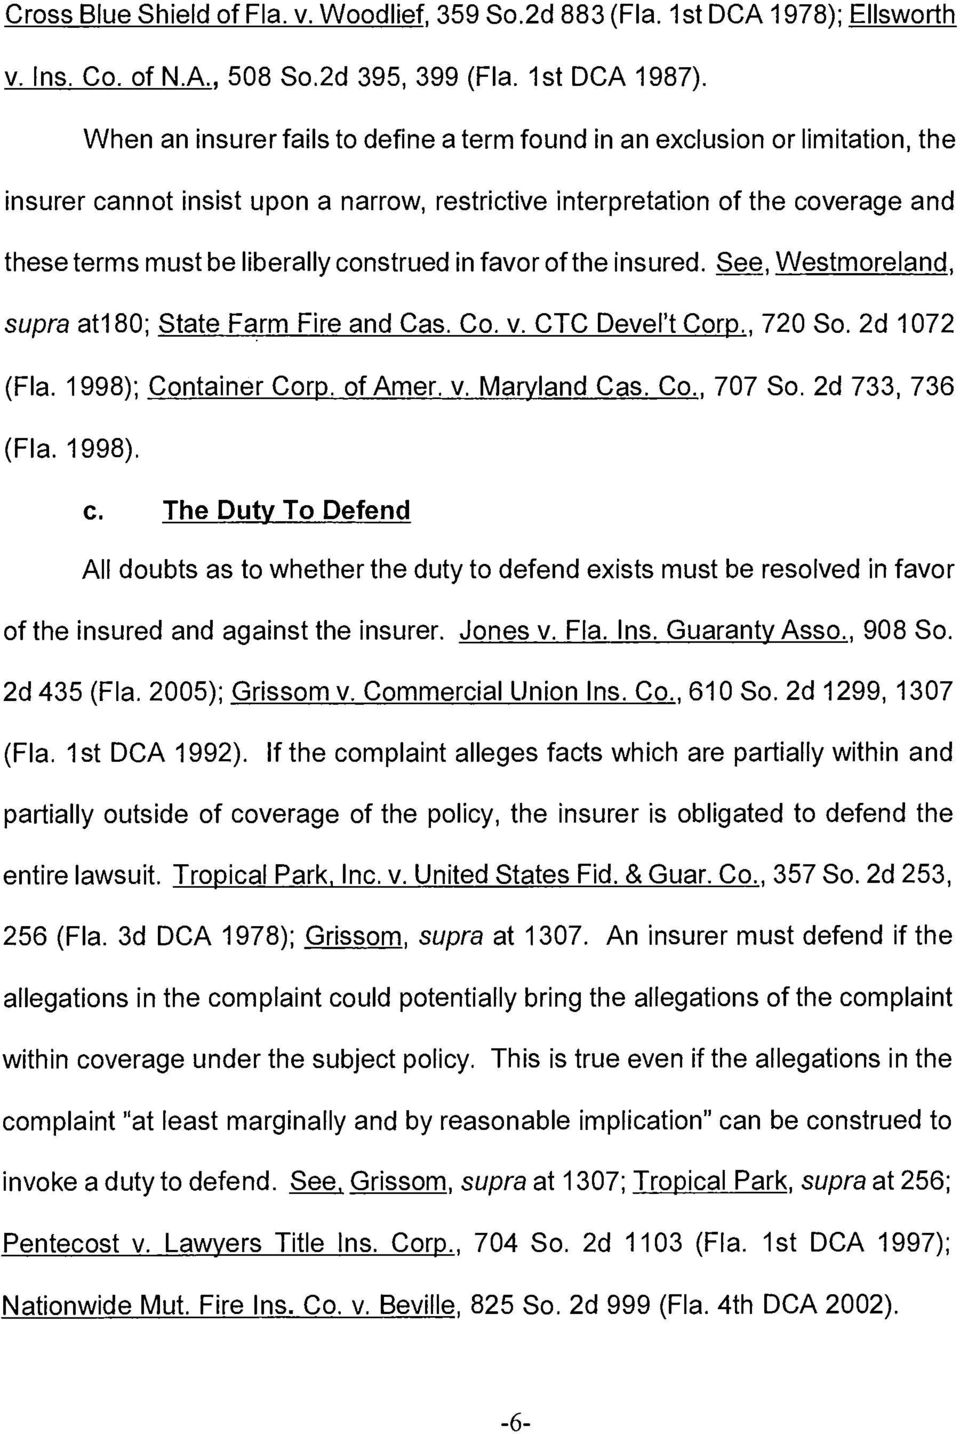 construed in favor of the insured. See, Westmoreland, supra atl8o; State Farm Fire and Cas. Co. v. CTC Devel't Corp., 720 So. 2d 1072 (Fla. 1998); Container Corp. of Amer. v. Maryland Cas. Co., 707 So.